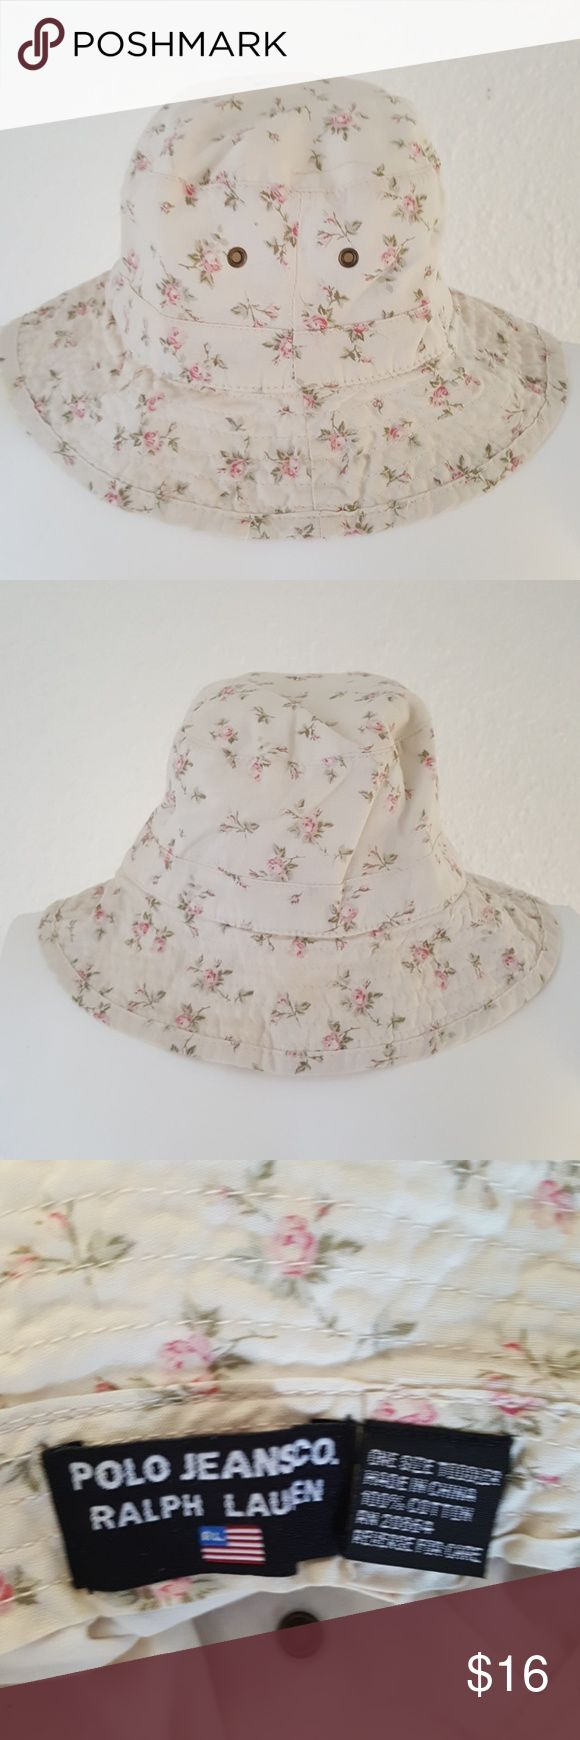 Polo Ralph Lauren Bucket Sun Hat Toddler 2T 3T 4T Super cute little bucket hat from Polo Jeans by Ralph Lauren in a one size toddler. Should fit 2T to 4T. Light ivory cream with delicate pink roses throughout. Lightweight 100% cotton. Not available anymore. Just darling. Polo by Ralph Lauren Accessories Hats